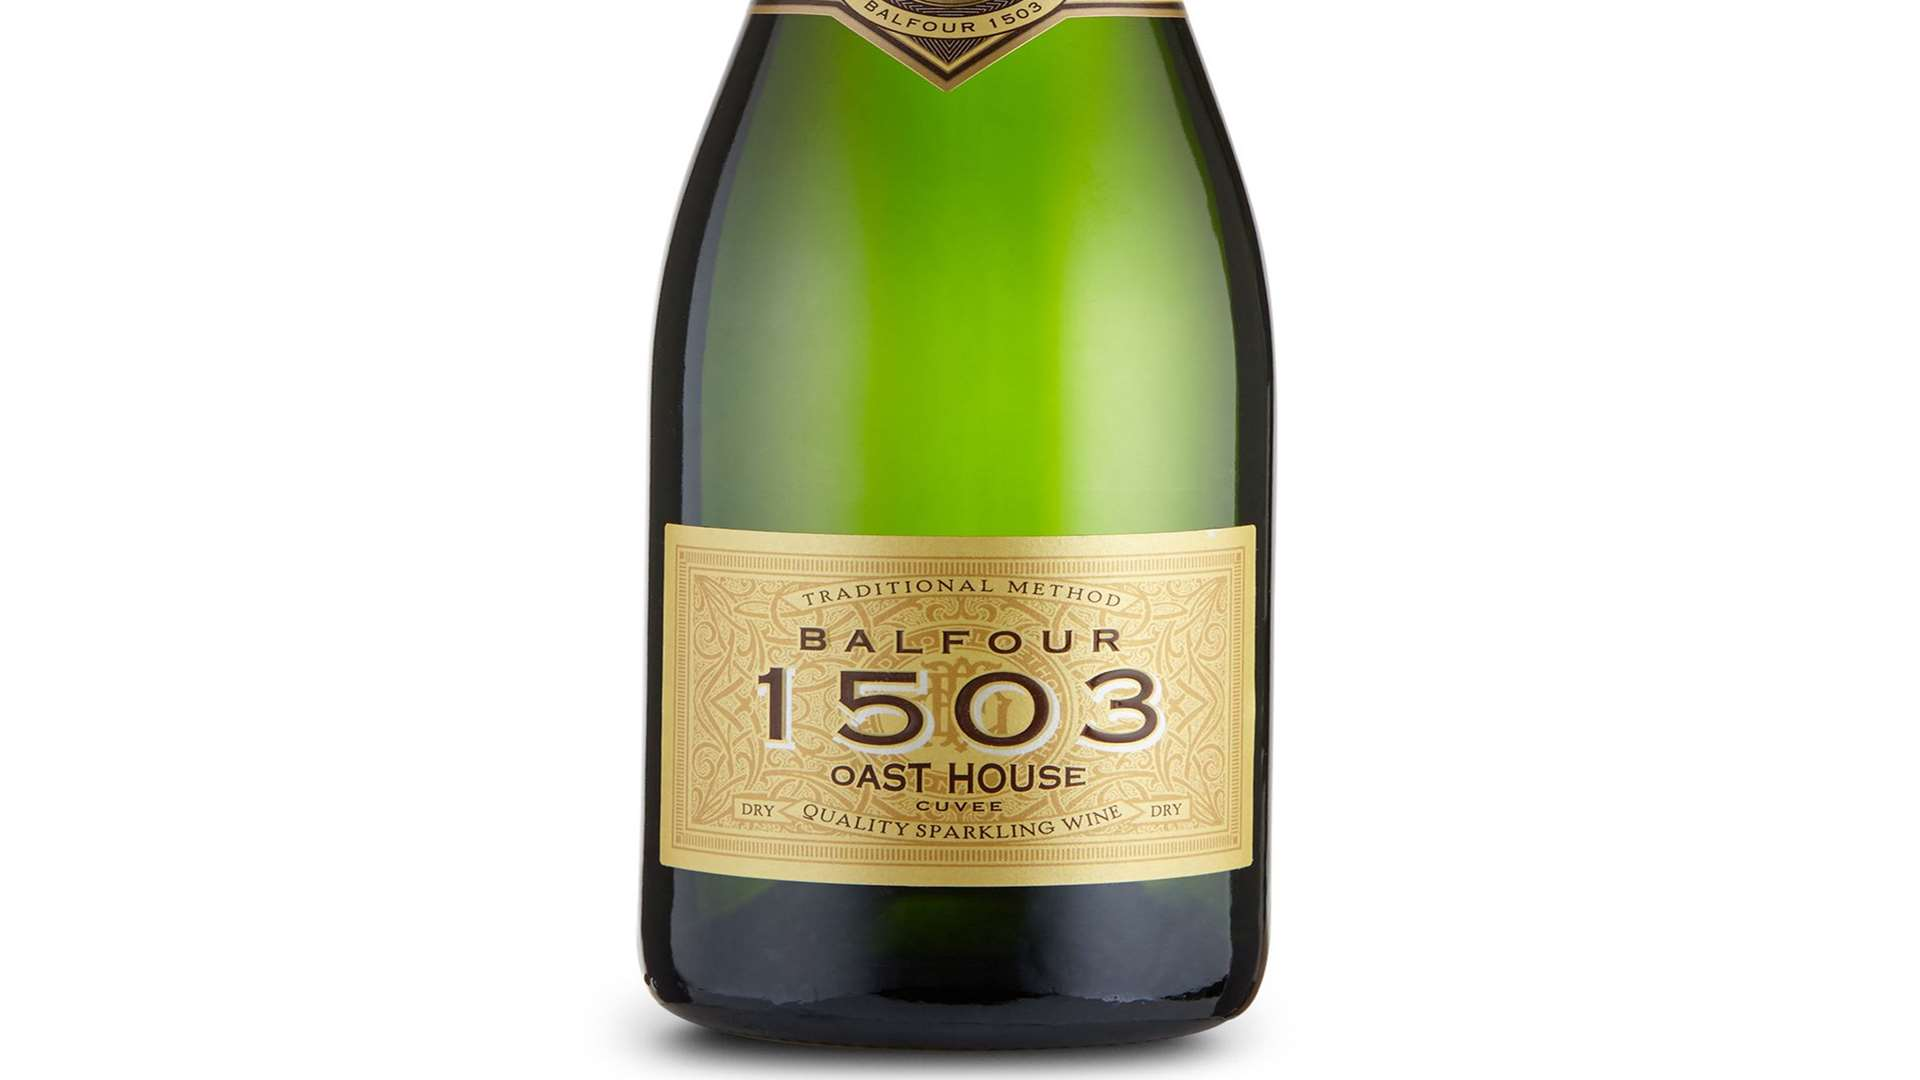 Hush Heath's Balfour 1503 Classic Cuvee will be sold in Canada